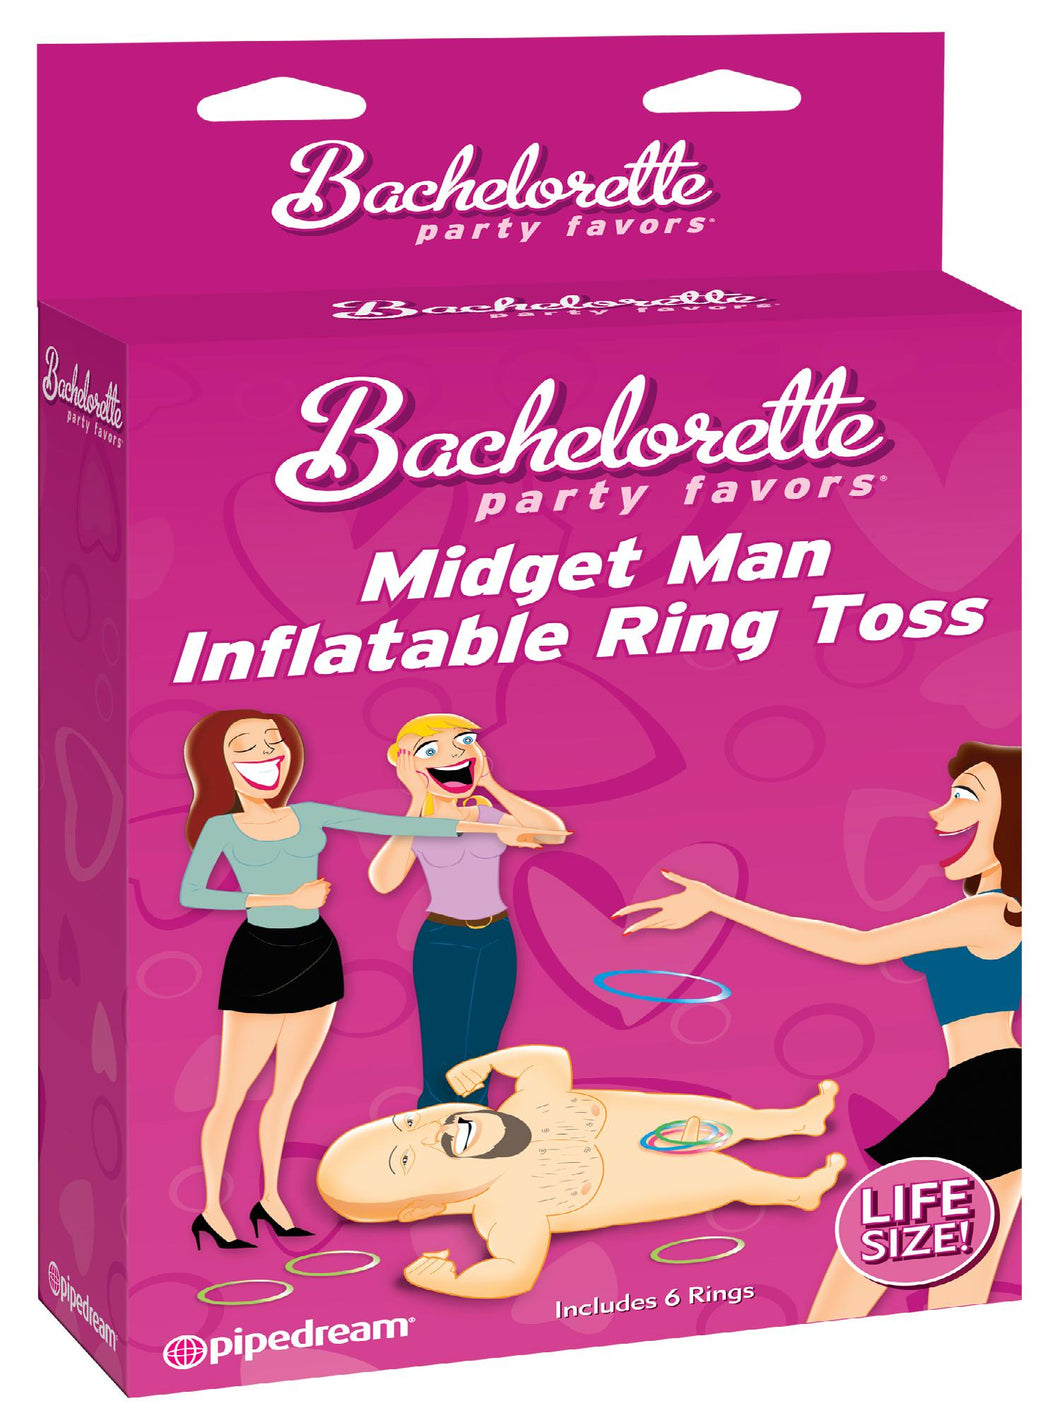 bachelorette party,party bachelorette,bachelorette parties,bachelorette party ideas,bachelorette decorations,bacheloretteplans.com,Bachelorette Midget Man Inflatable Ring Toss